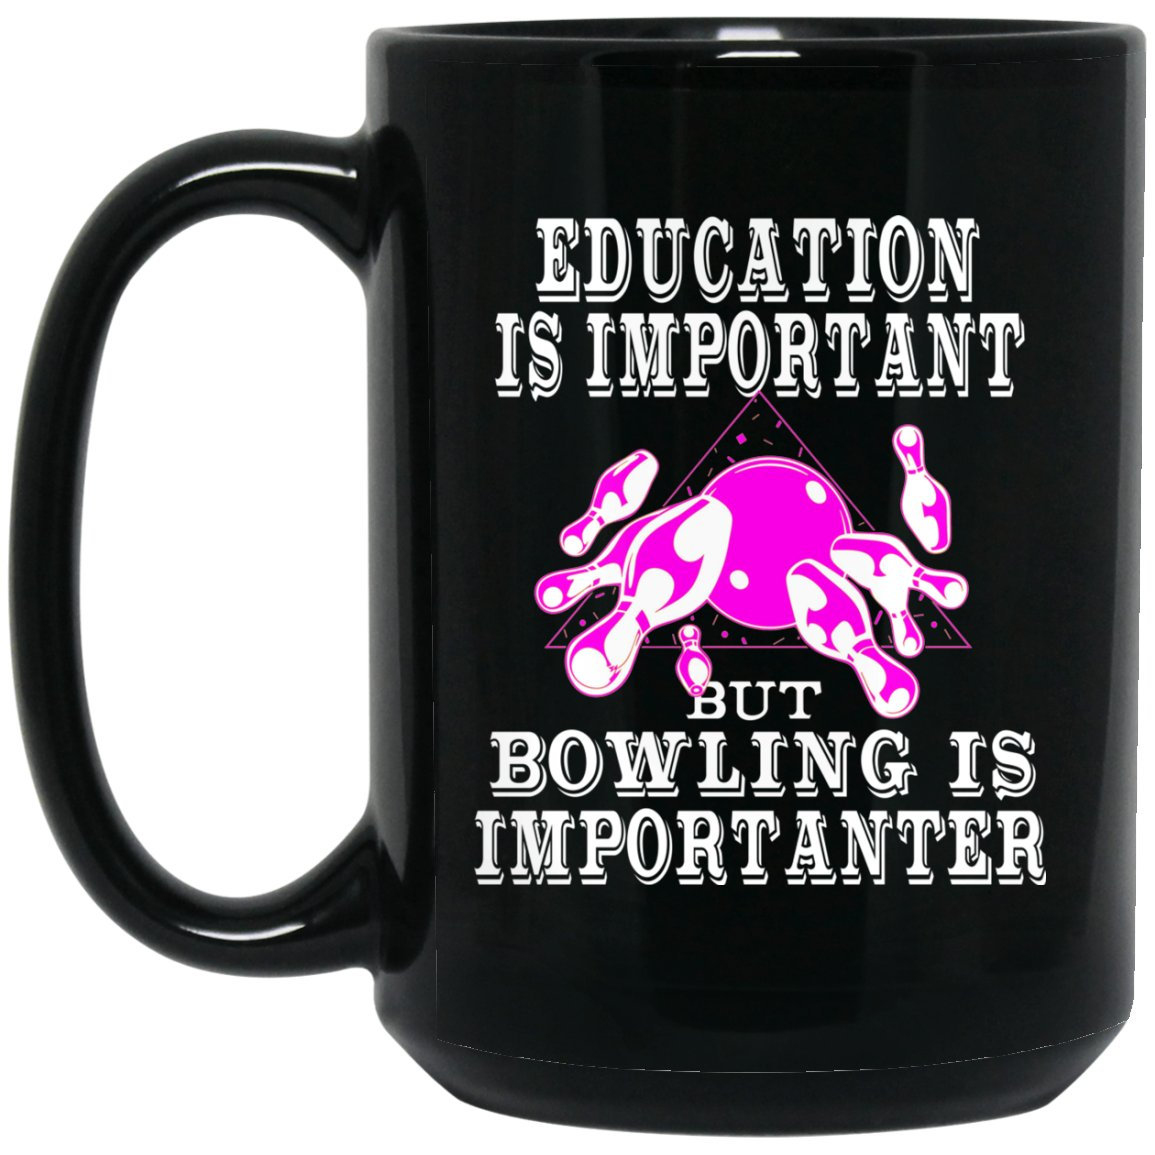 Funny Bowling Mug For Women - Education Large Black Mug